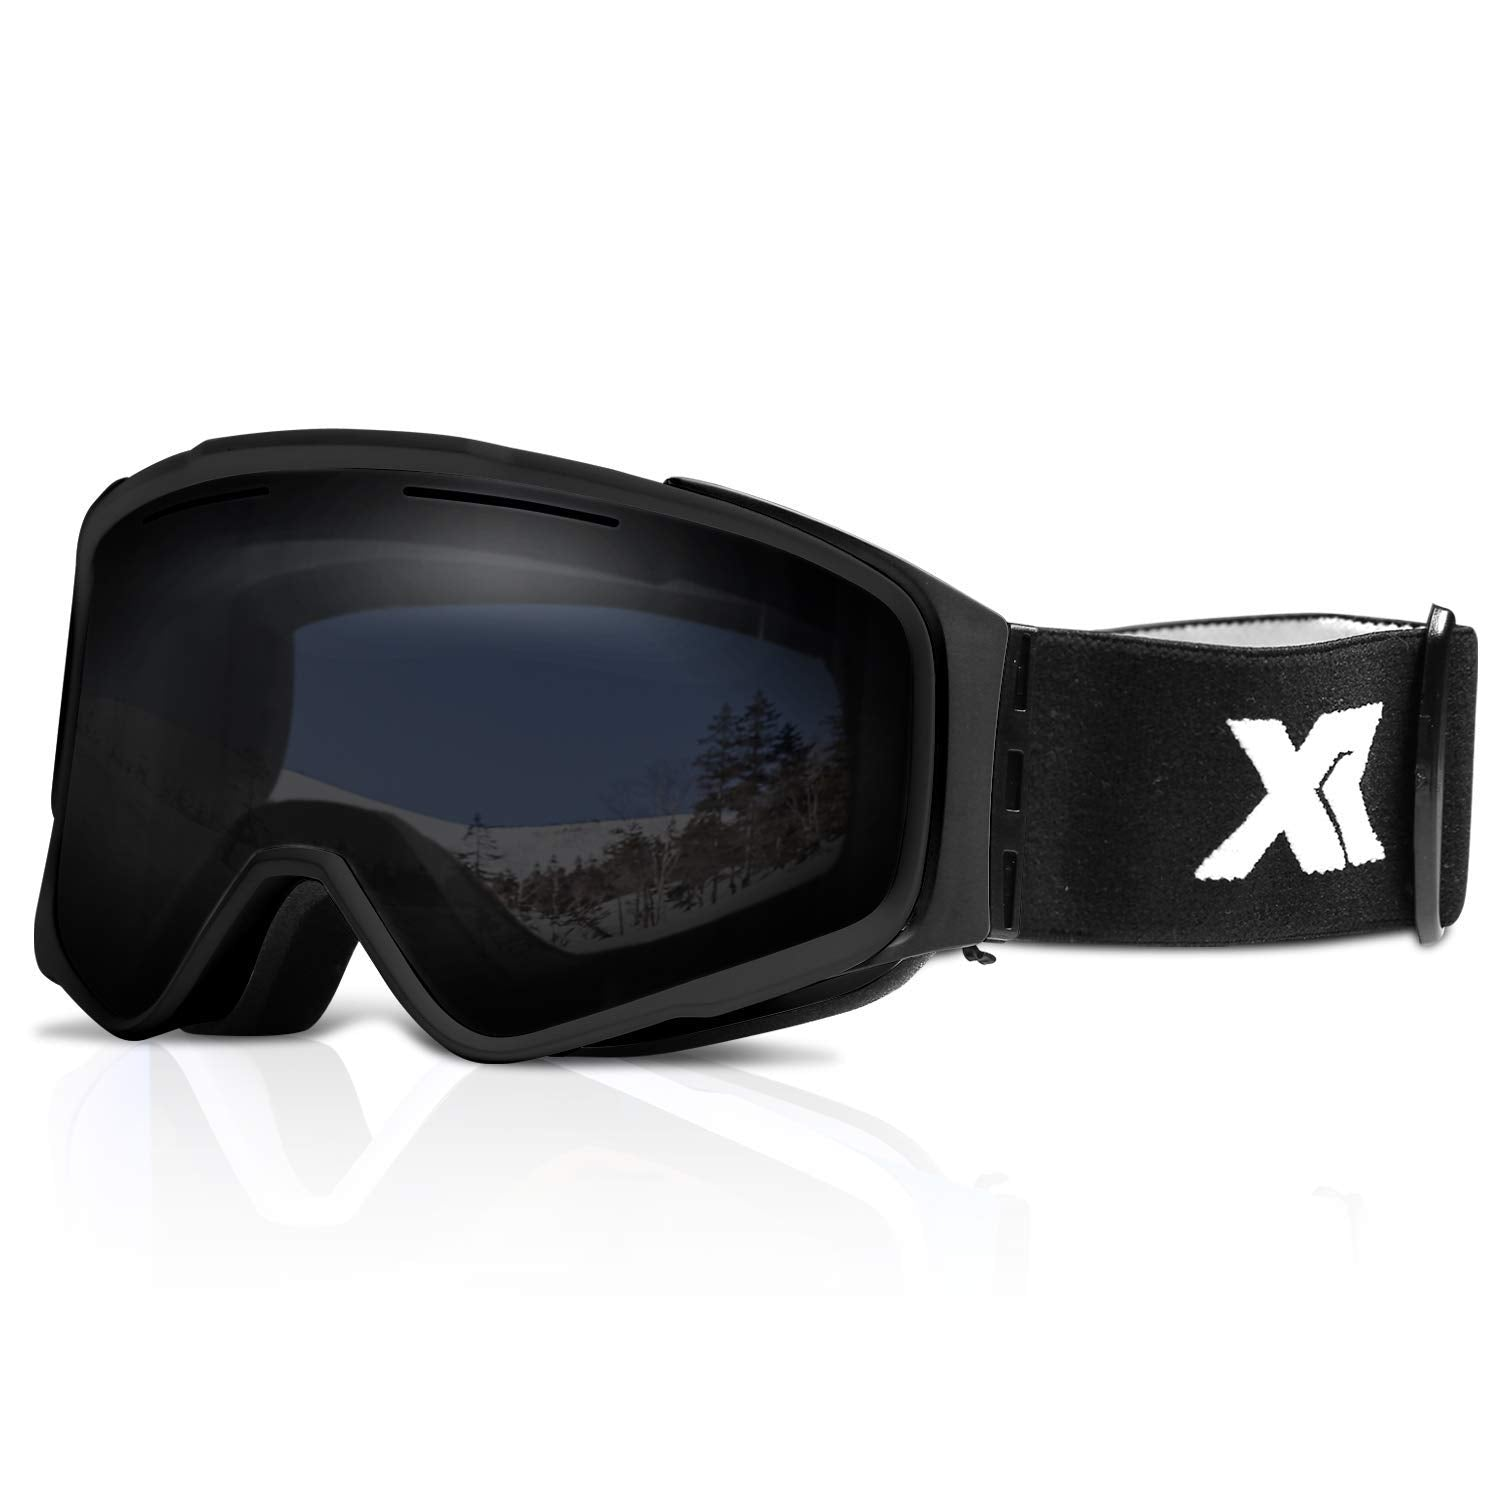 Anti Fog Snow Goggles with Magnetic, Replaceable UV Protection